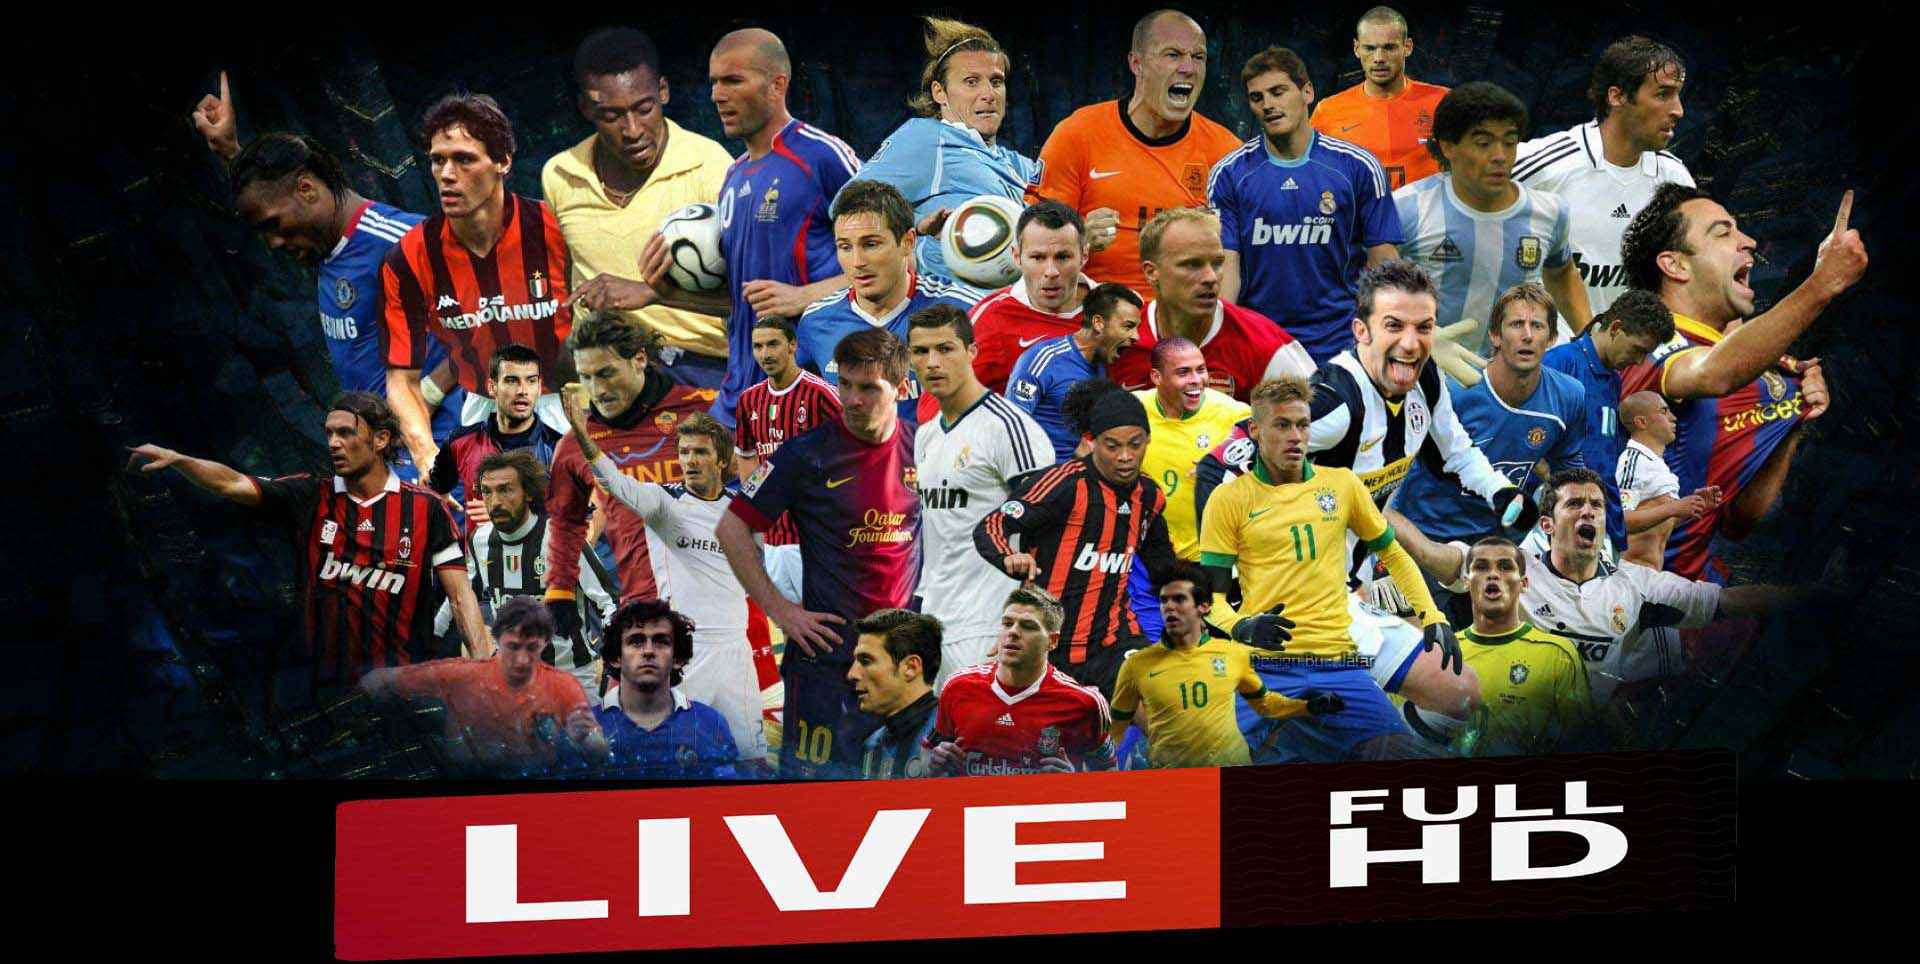 Juventus vs Real Madrid live